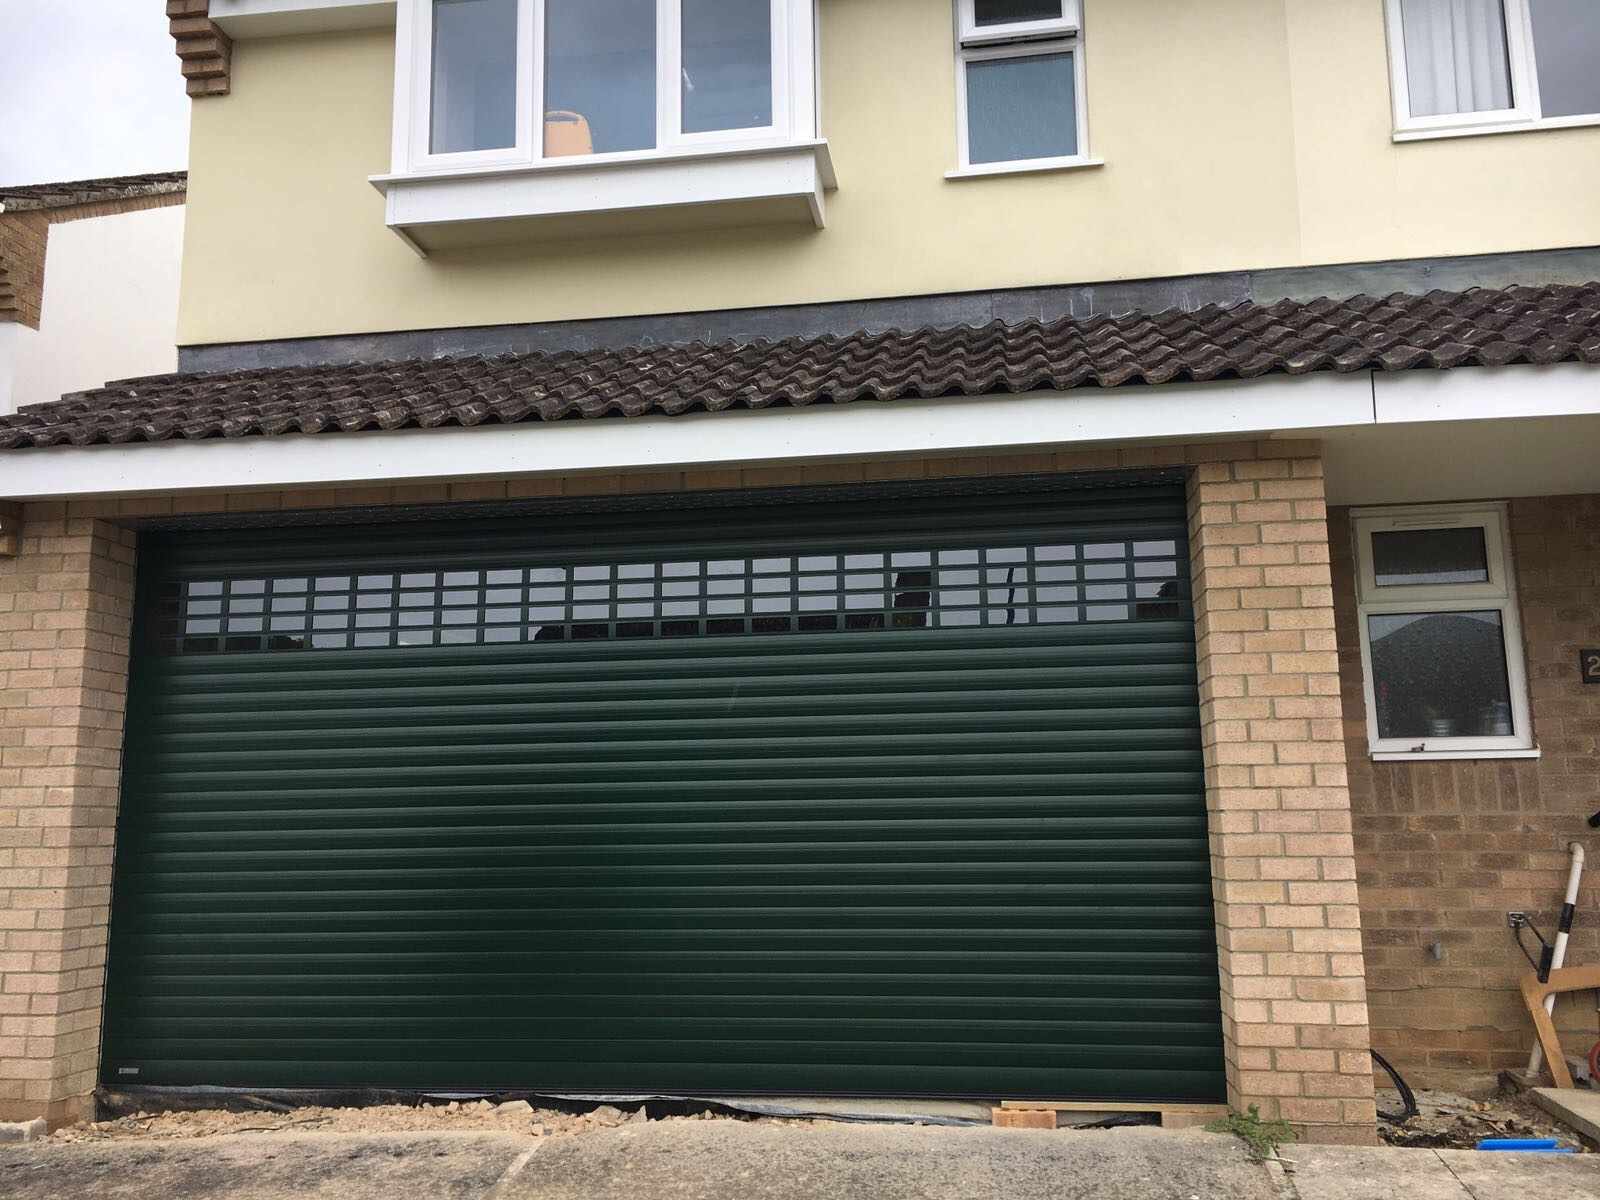 Sws Seceuroglide Garage Doors Now With A 7 Year Warranty Roller